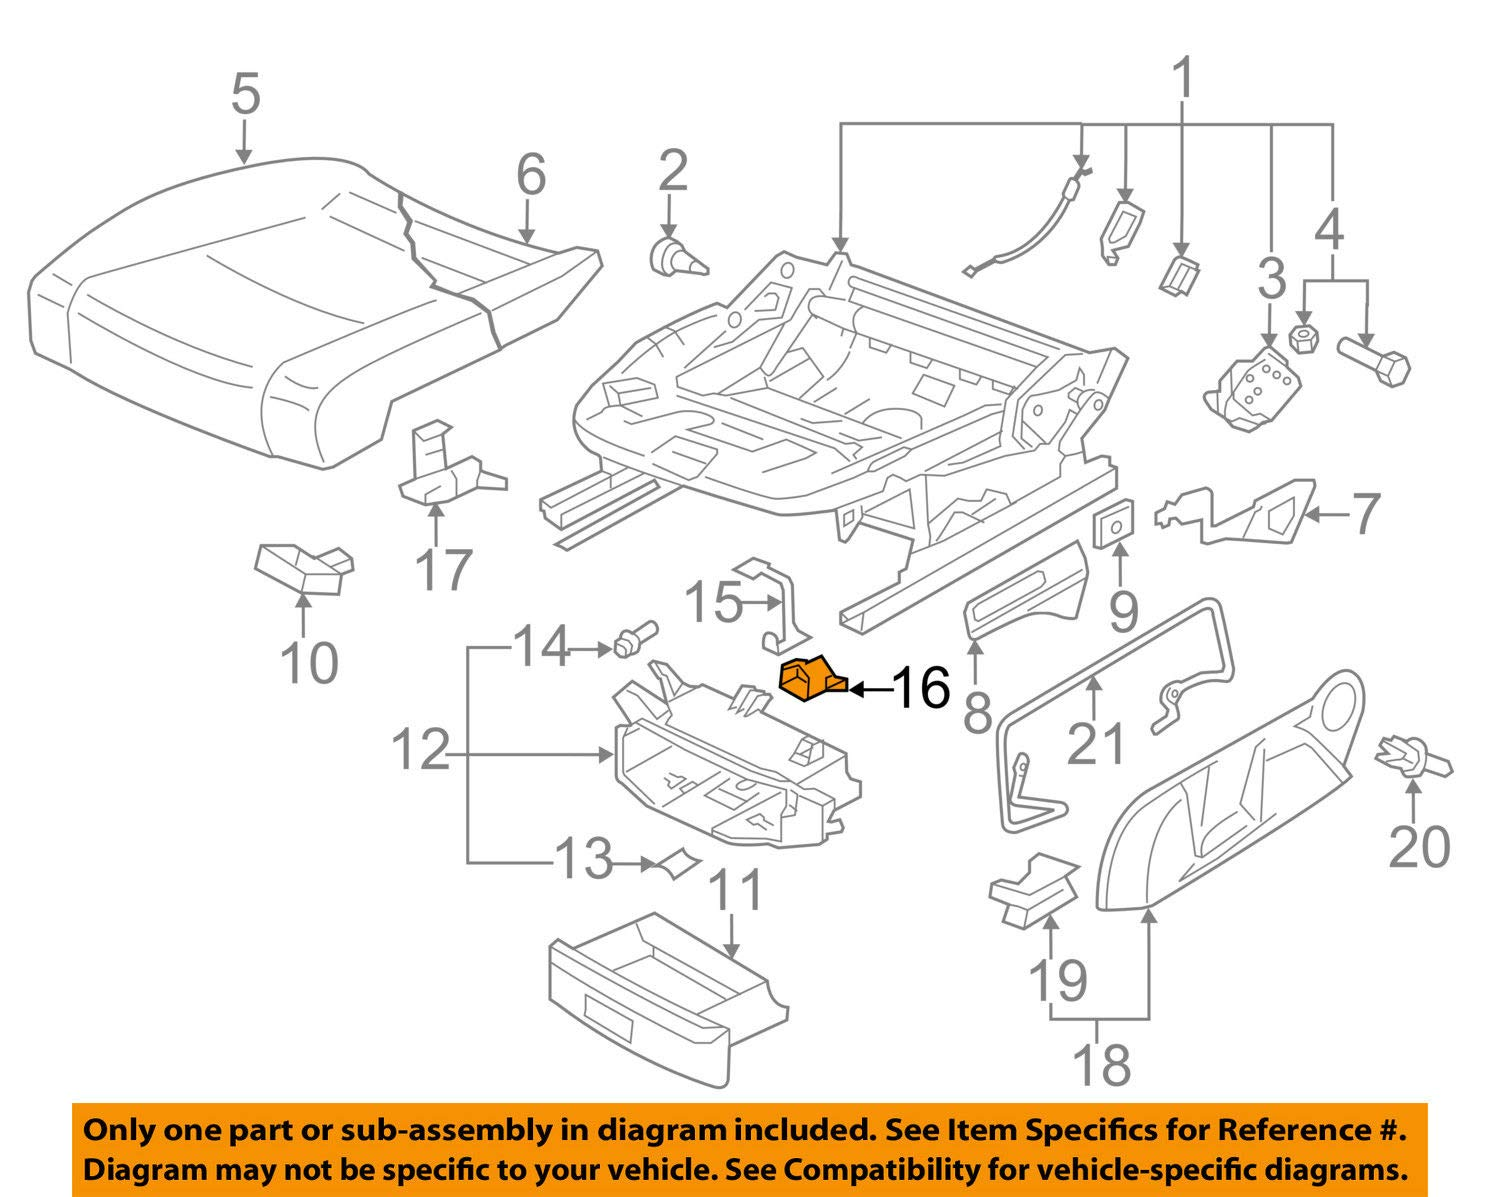 Outstanding Amazon Com Volkswagen 1K0881347C9B9 Genuine Oem Track End Cover Wiring 101 Capemaxxcnl